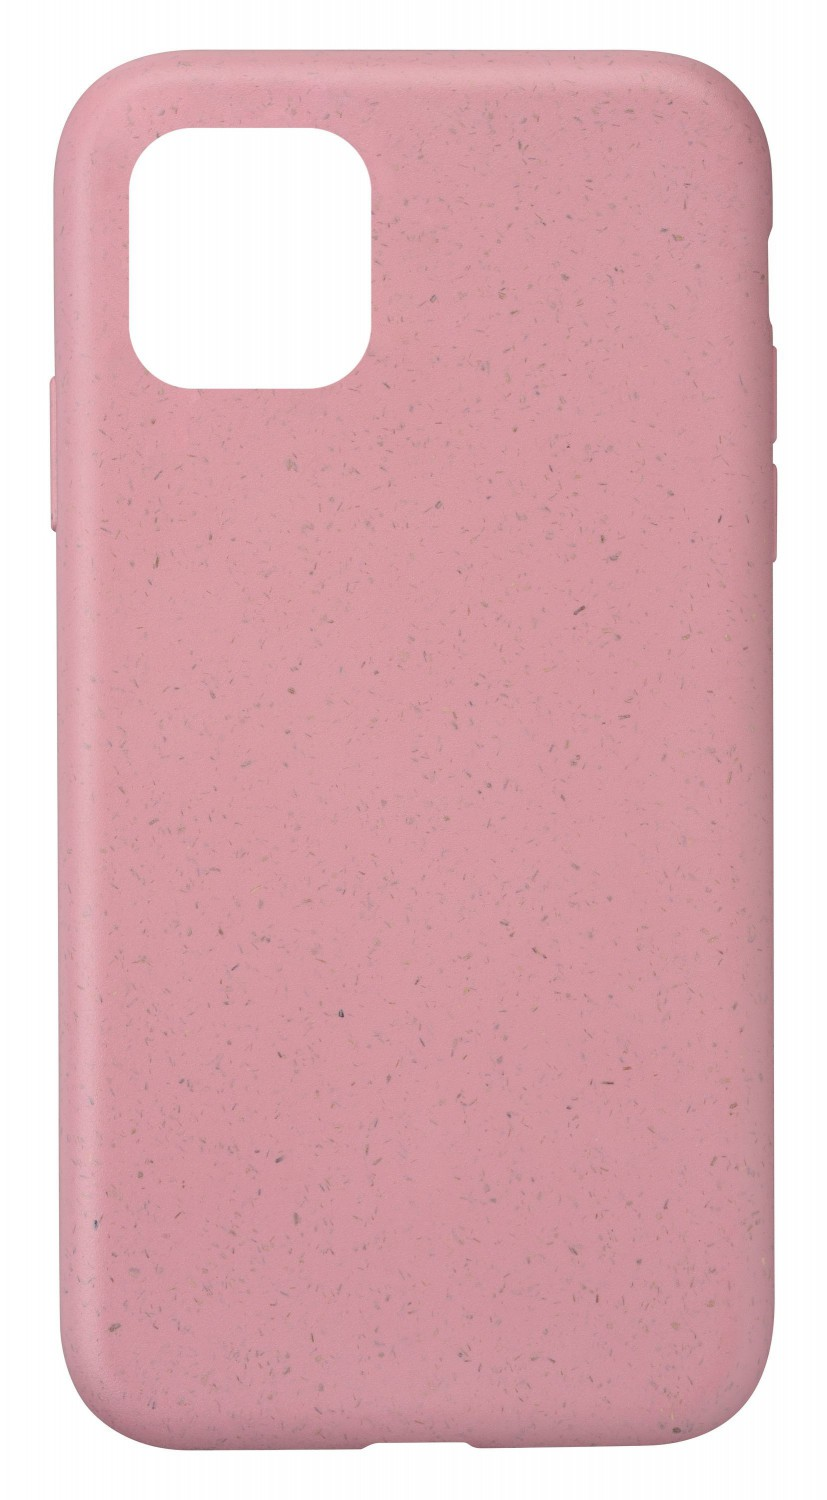 Cellularline Become eko kryt, pouzdro, obal Apple iPhone 12/12 Pro pink